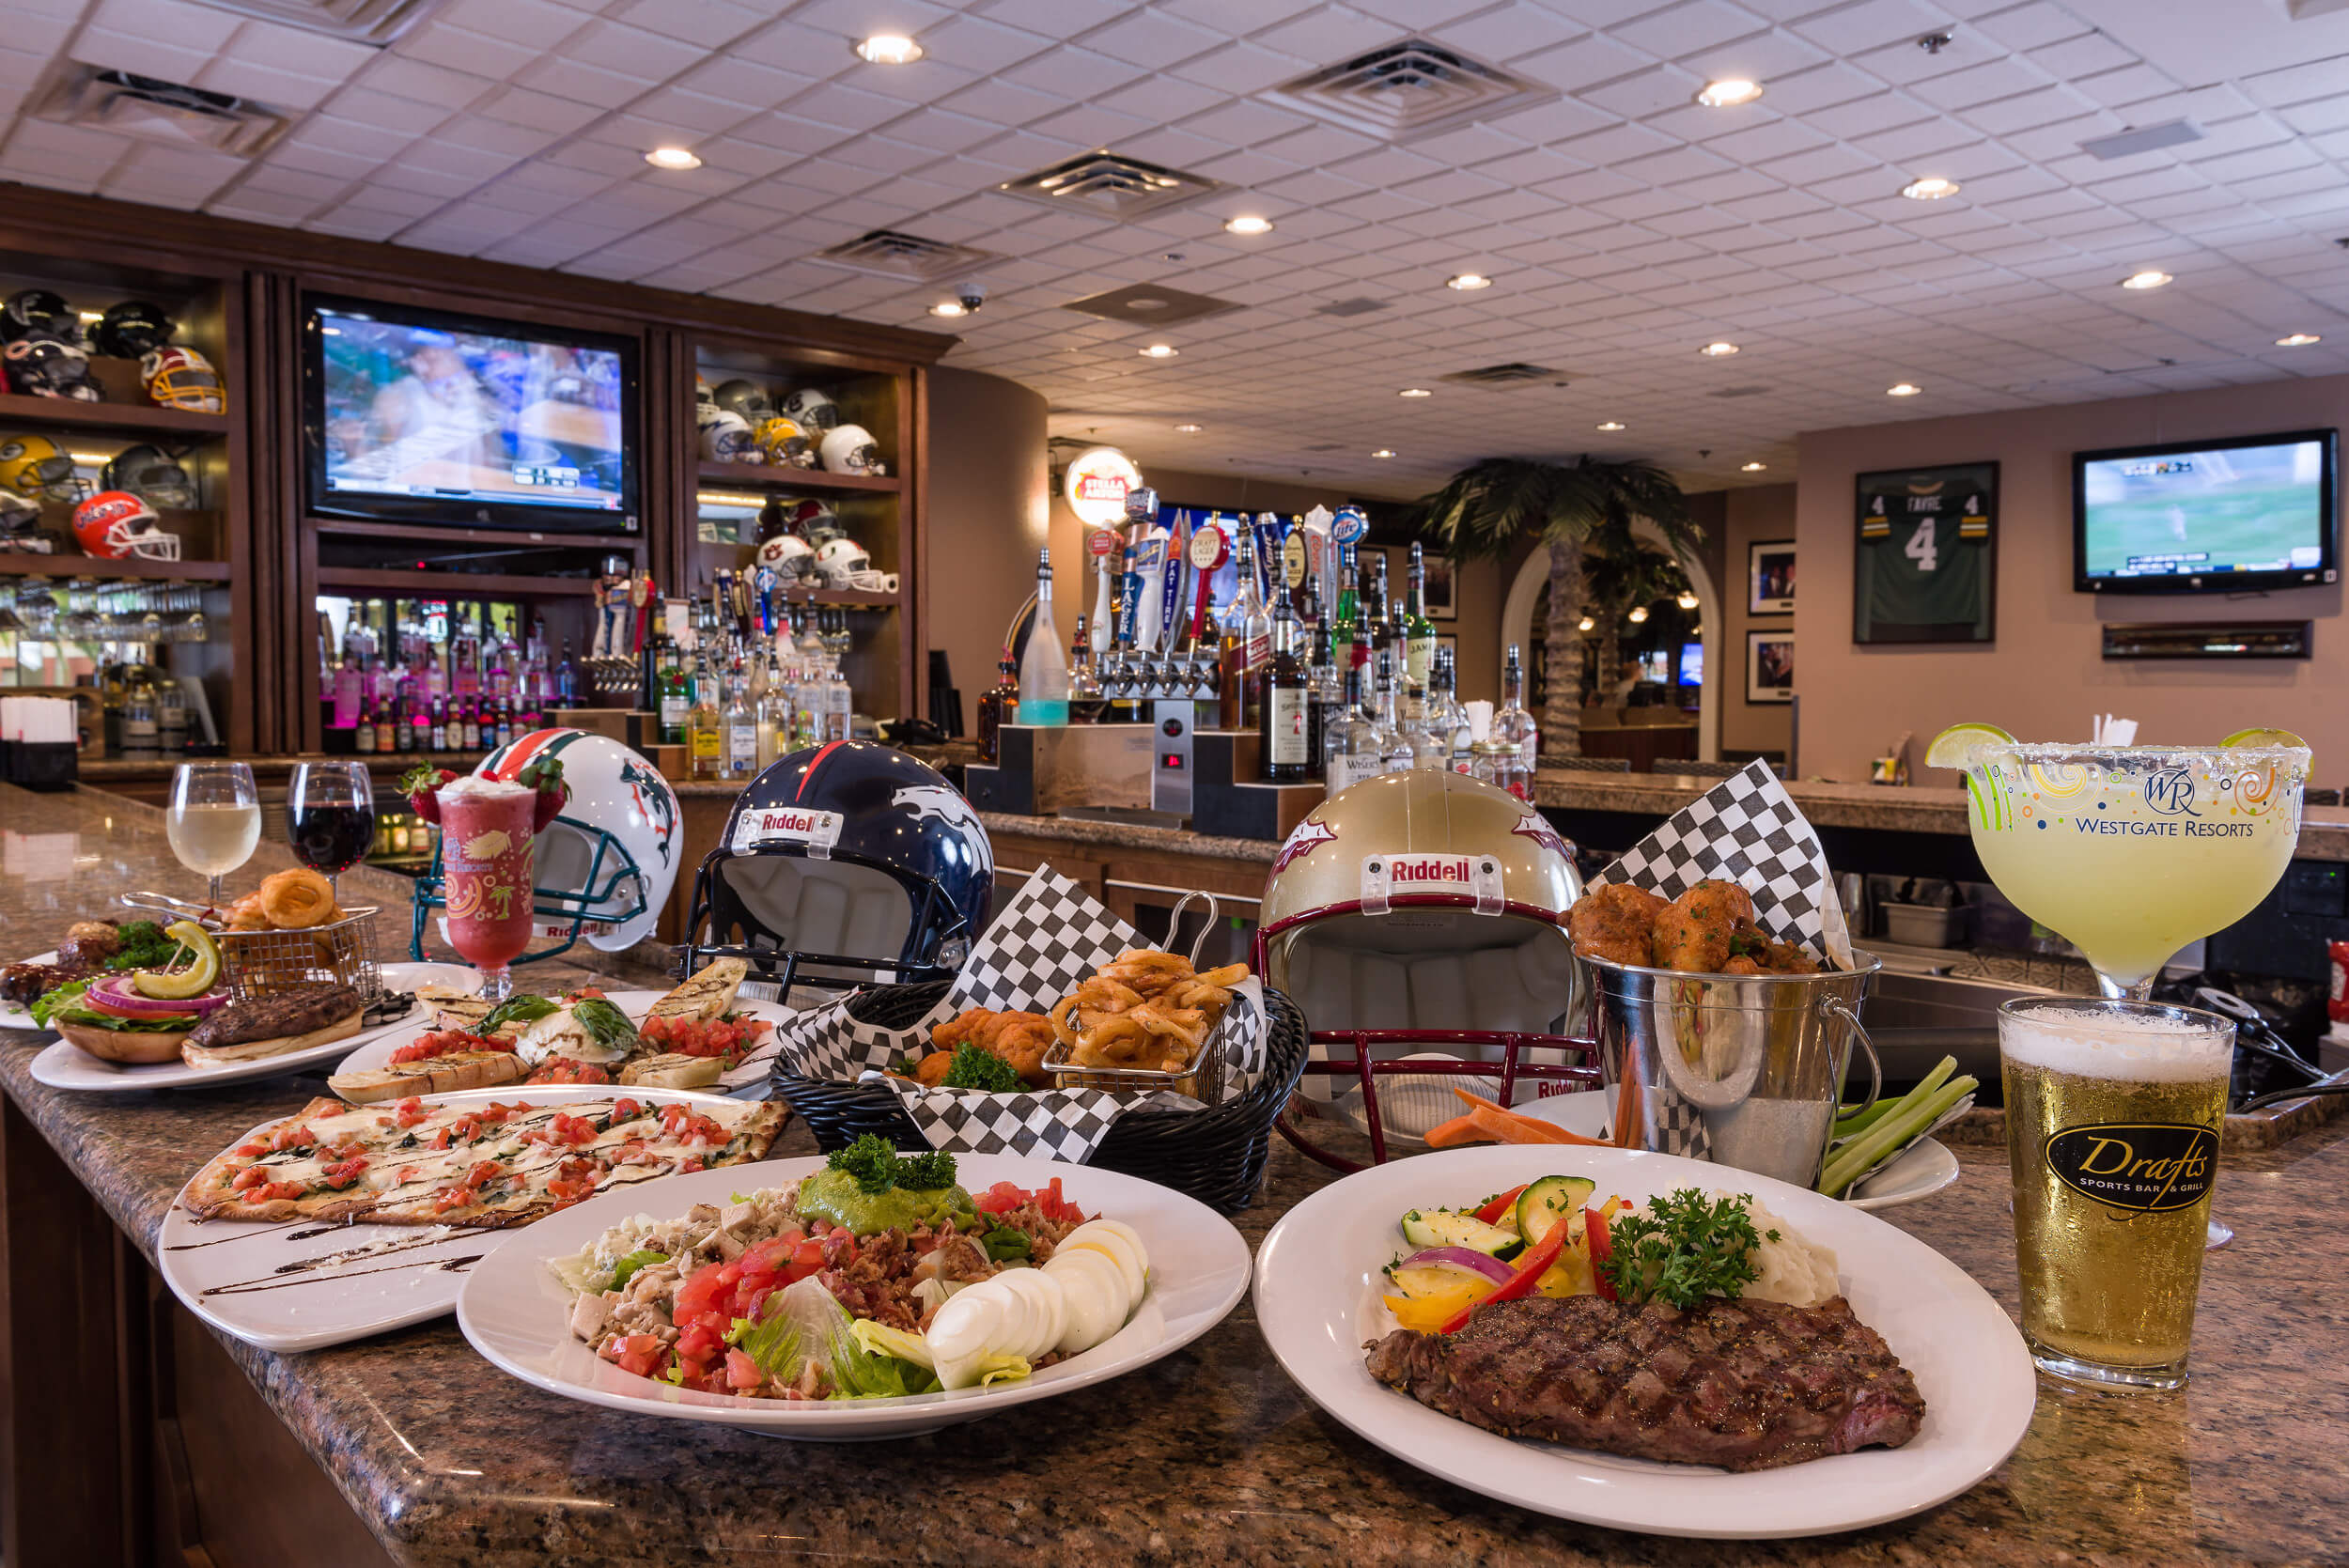 Delicious Meal and Drink Options at Drafts | Westgate Resorts